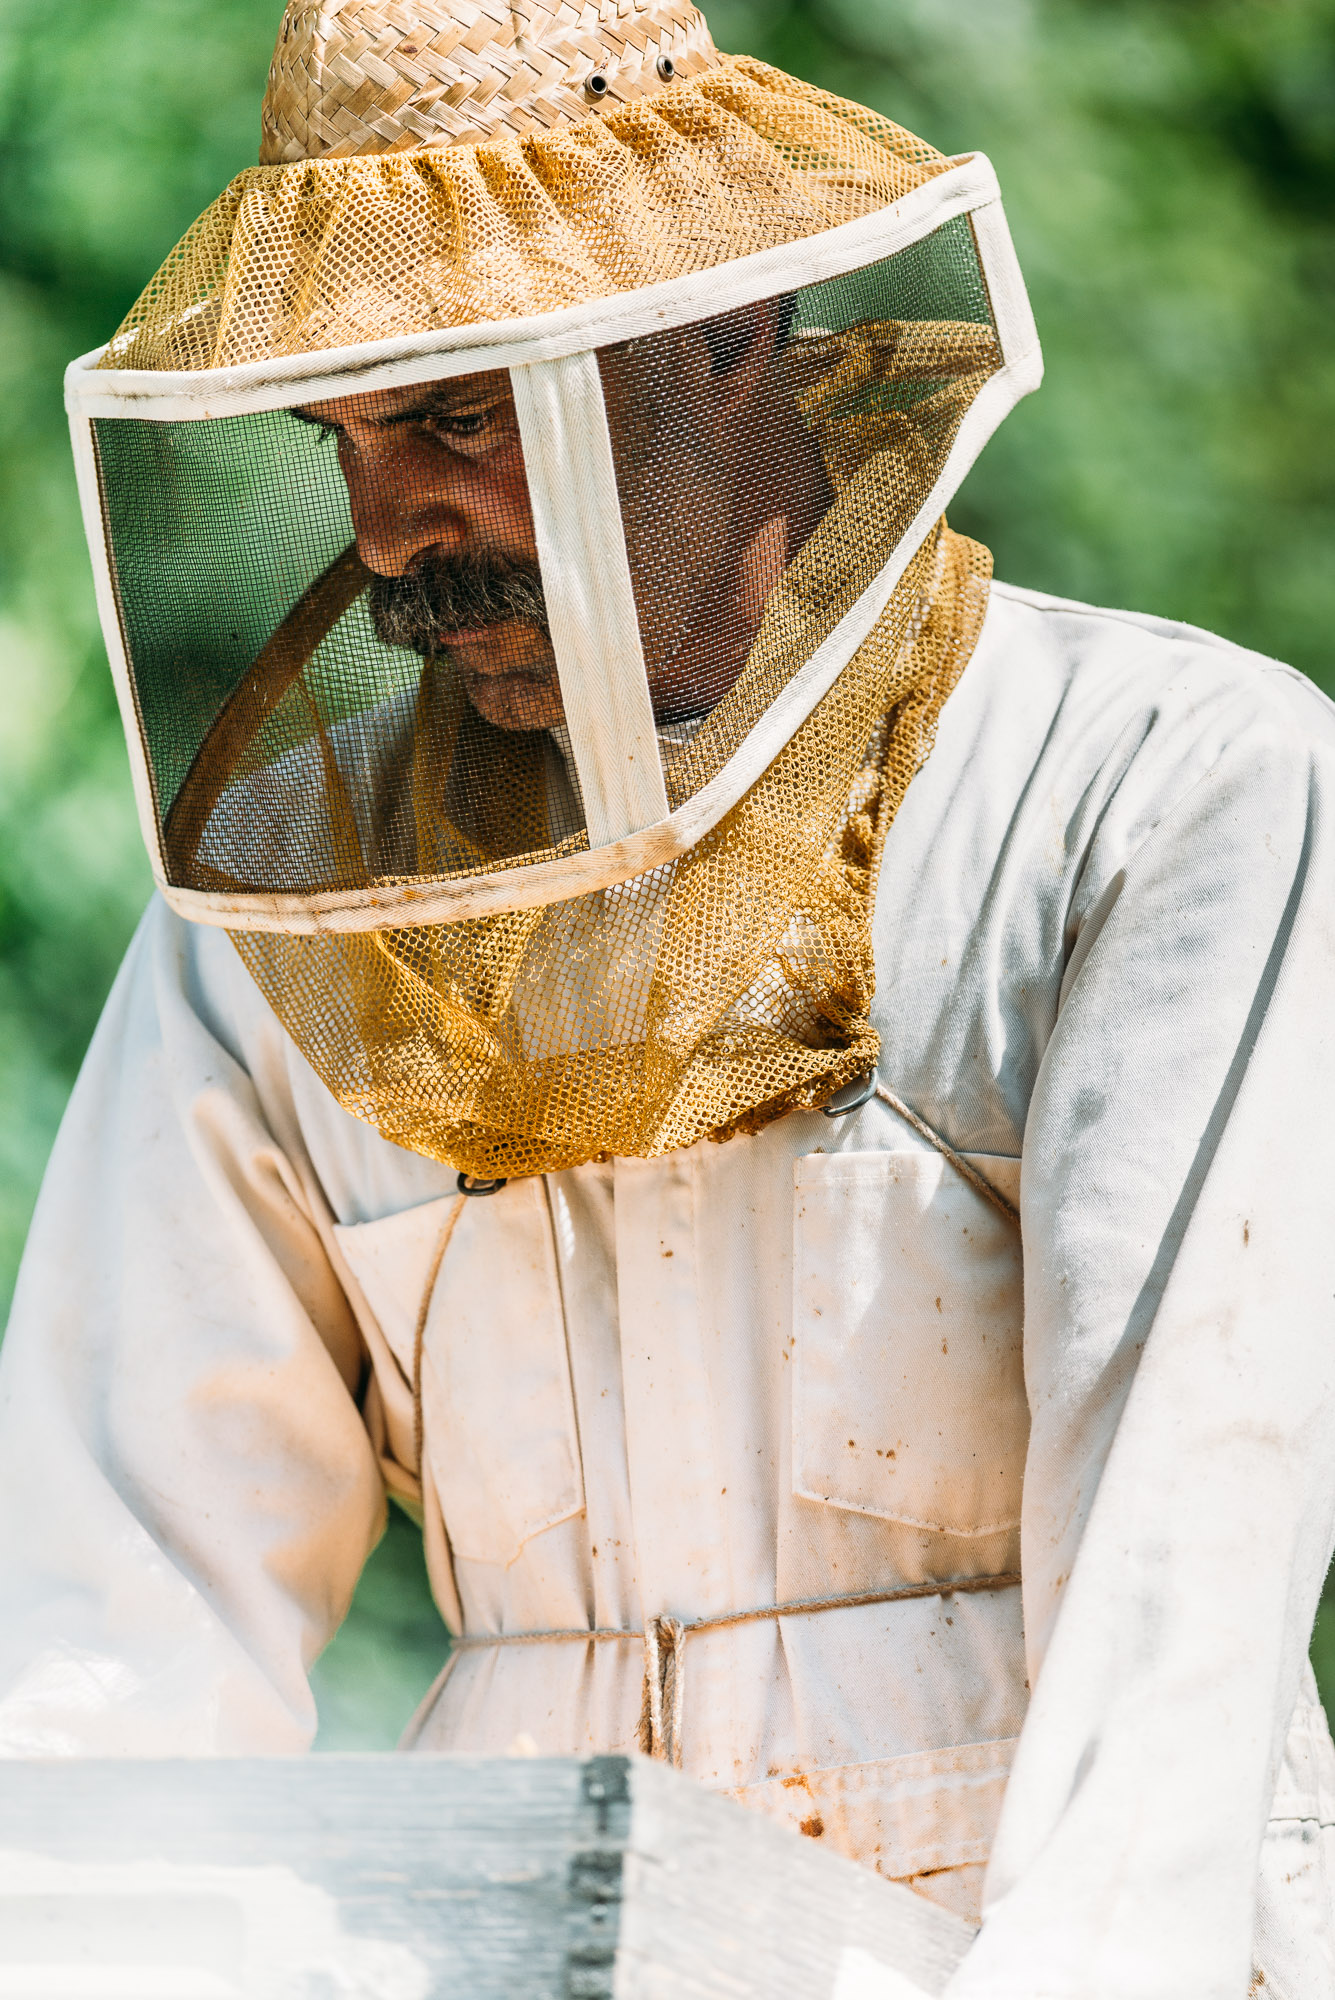 Bee Keeper Tom